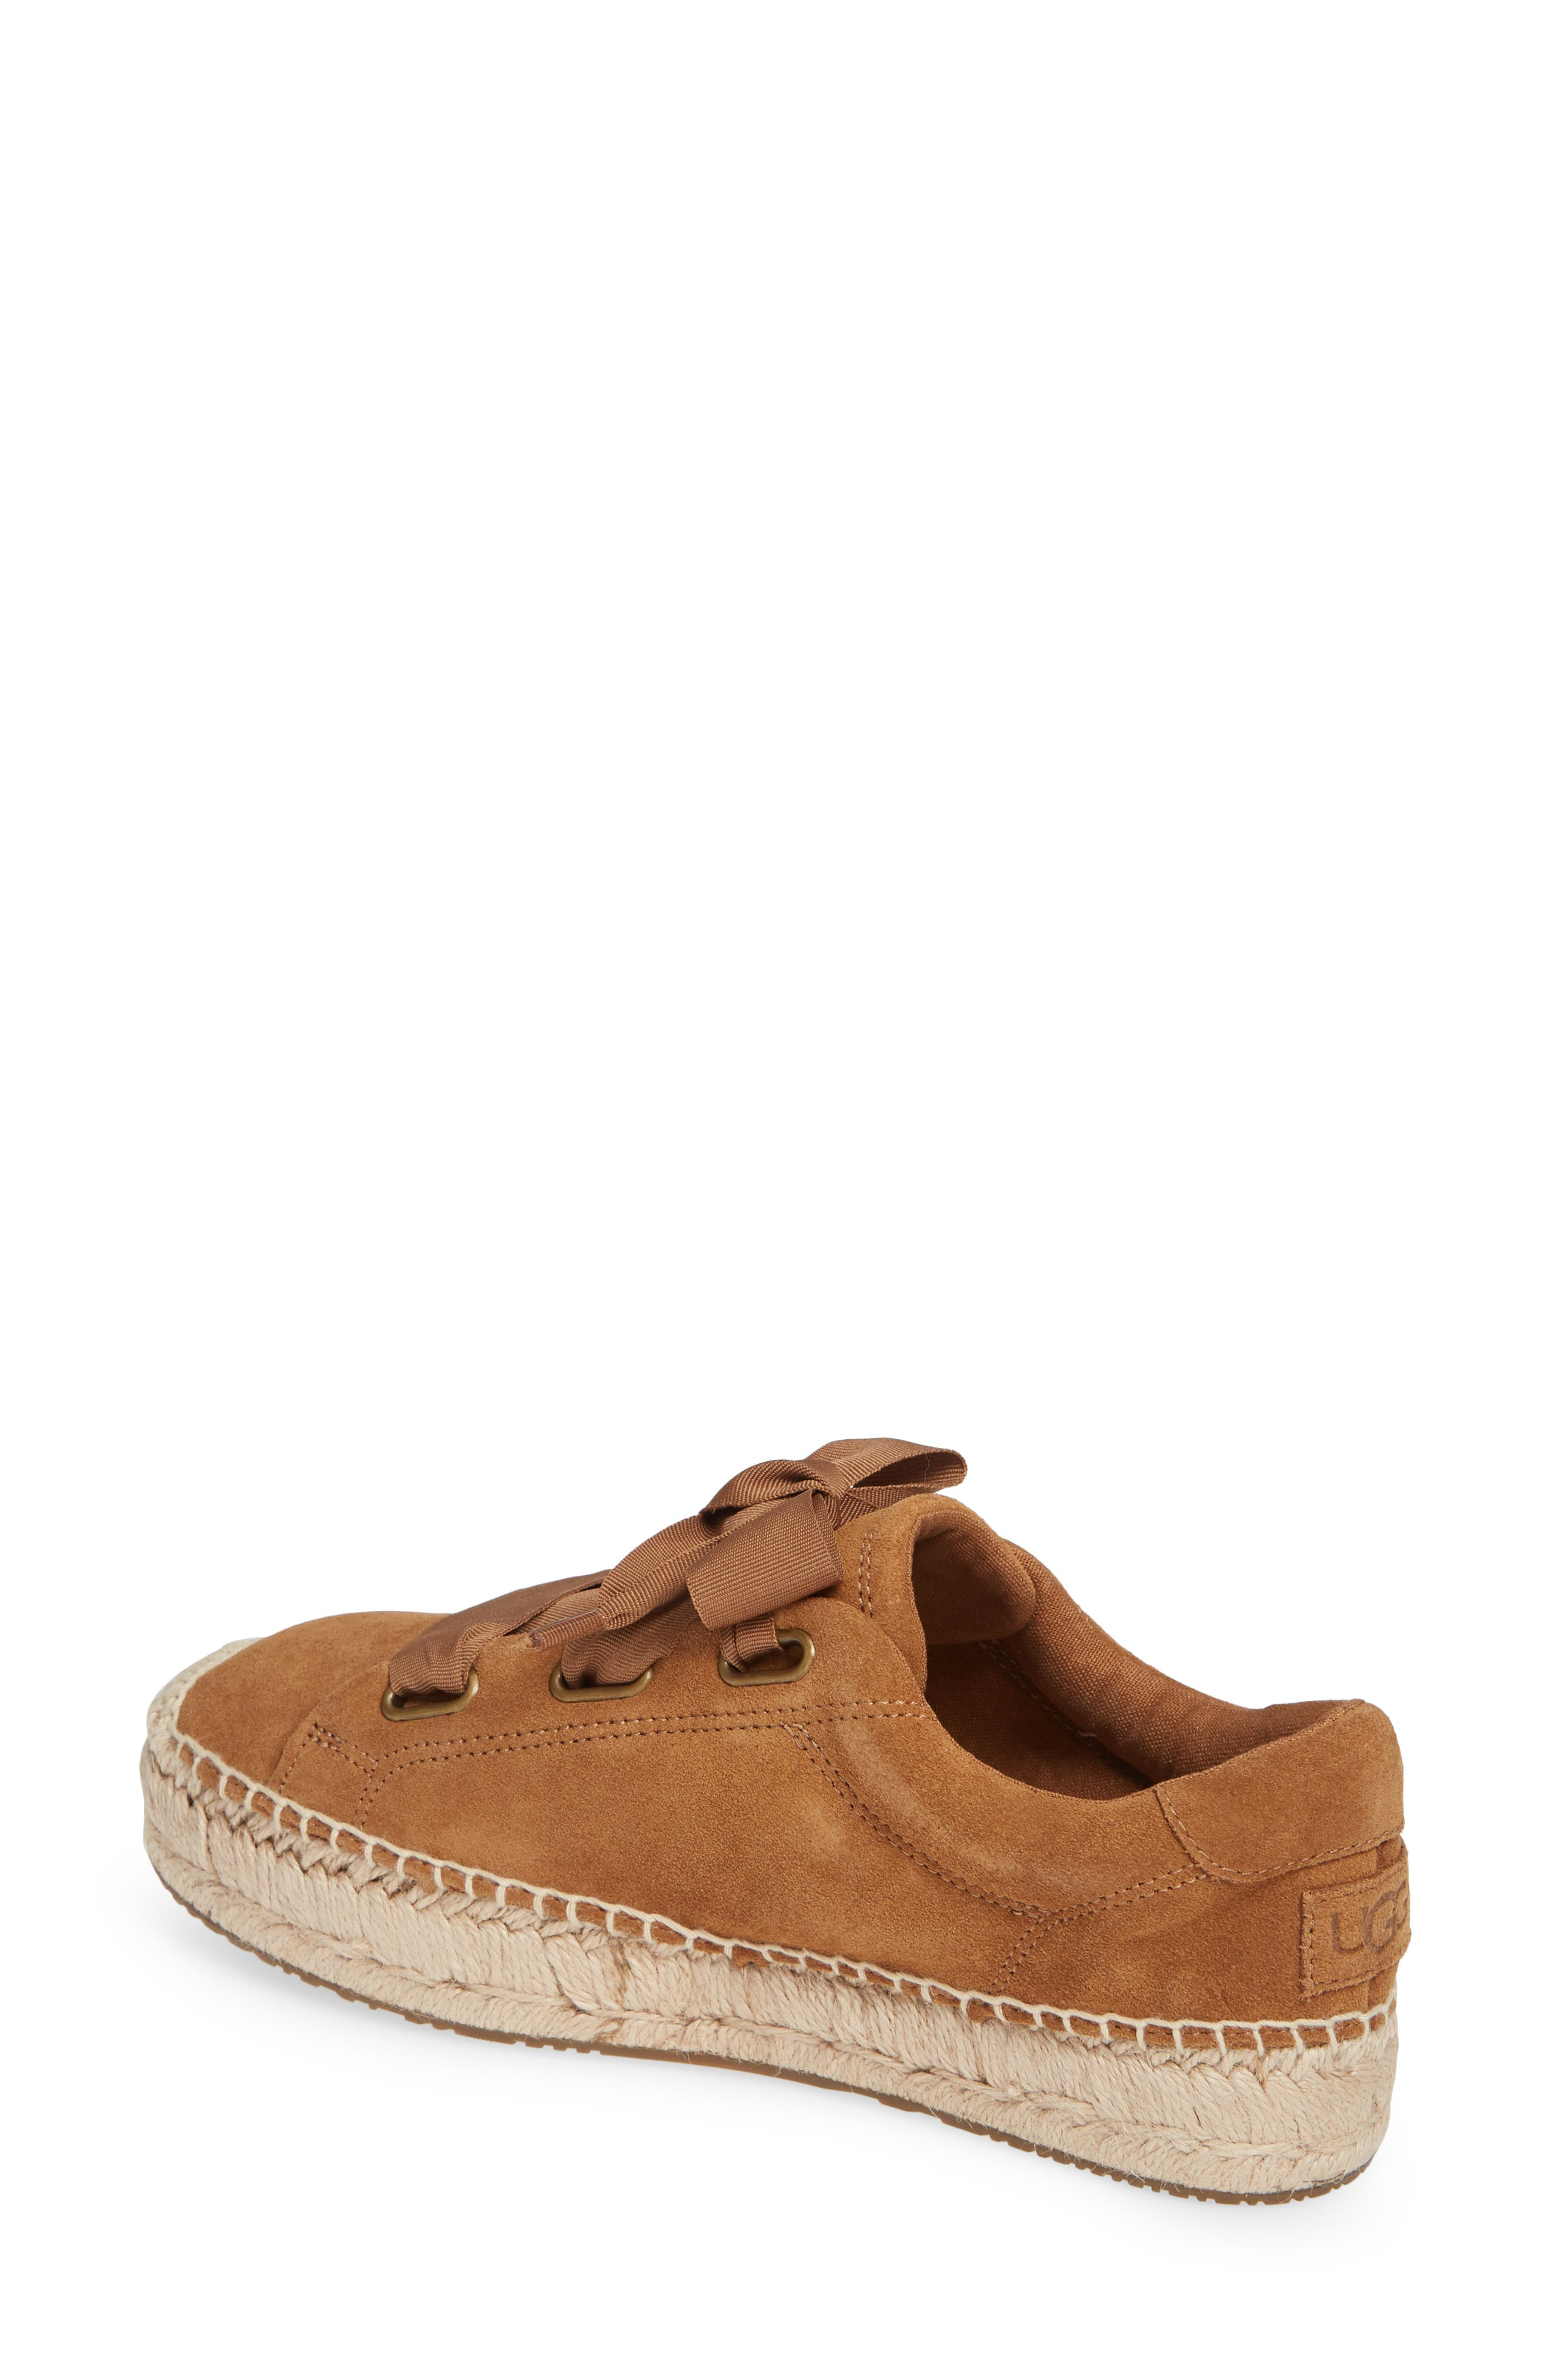 UGG<SUP>®</SUP>, Brianna Sneaker, Alternate thumbnail 2, color, CHESTNUT SUEDE